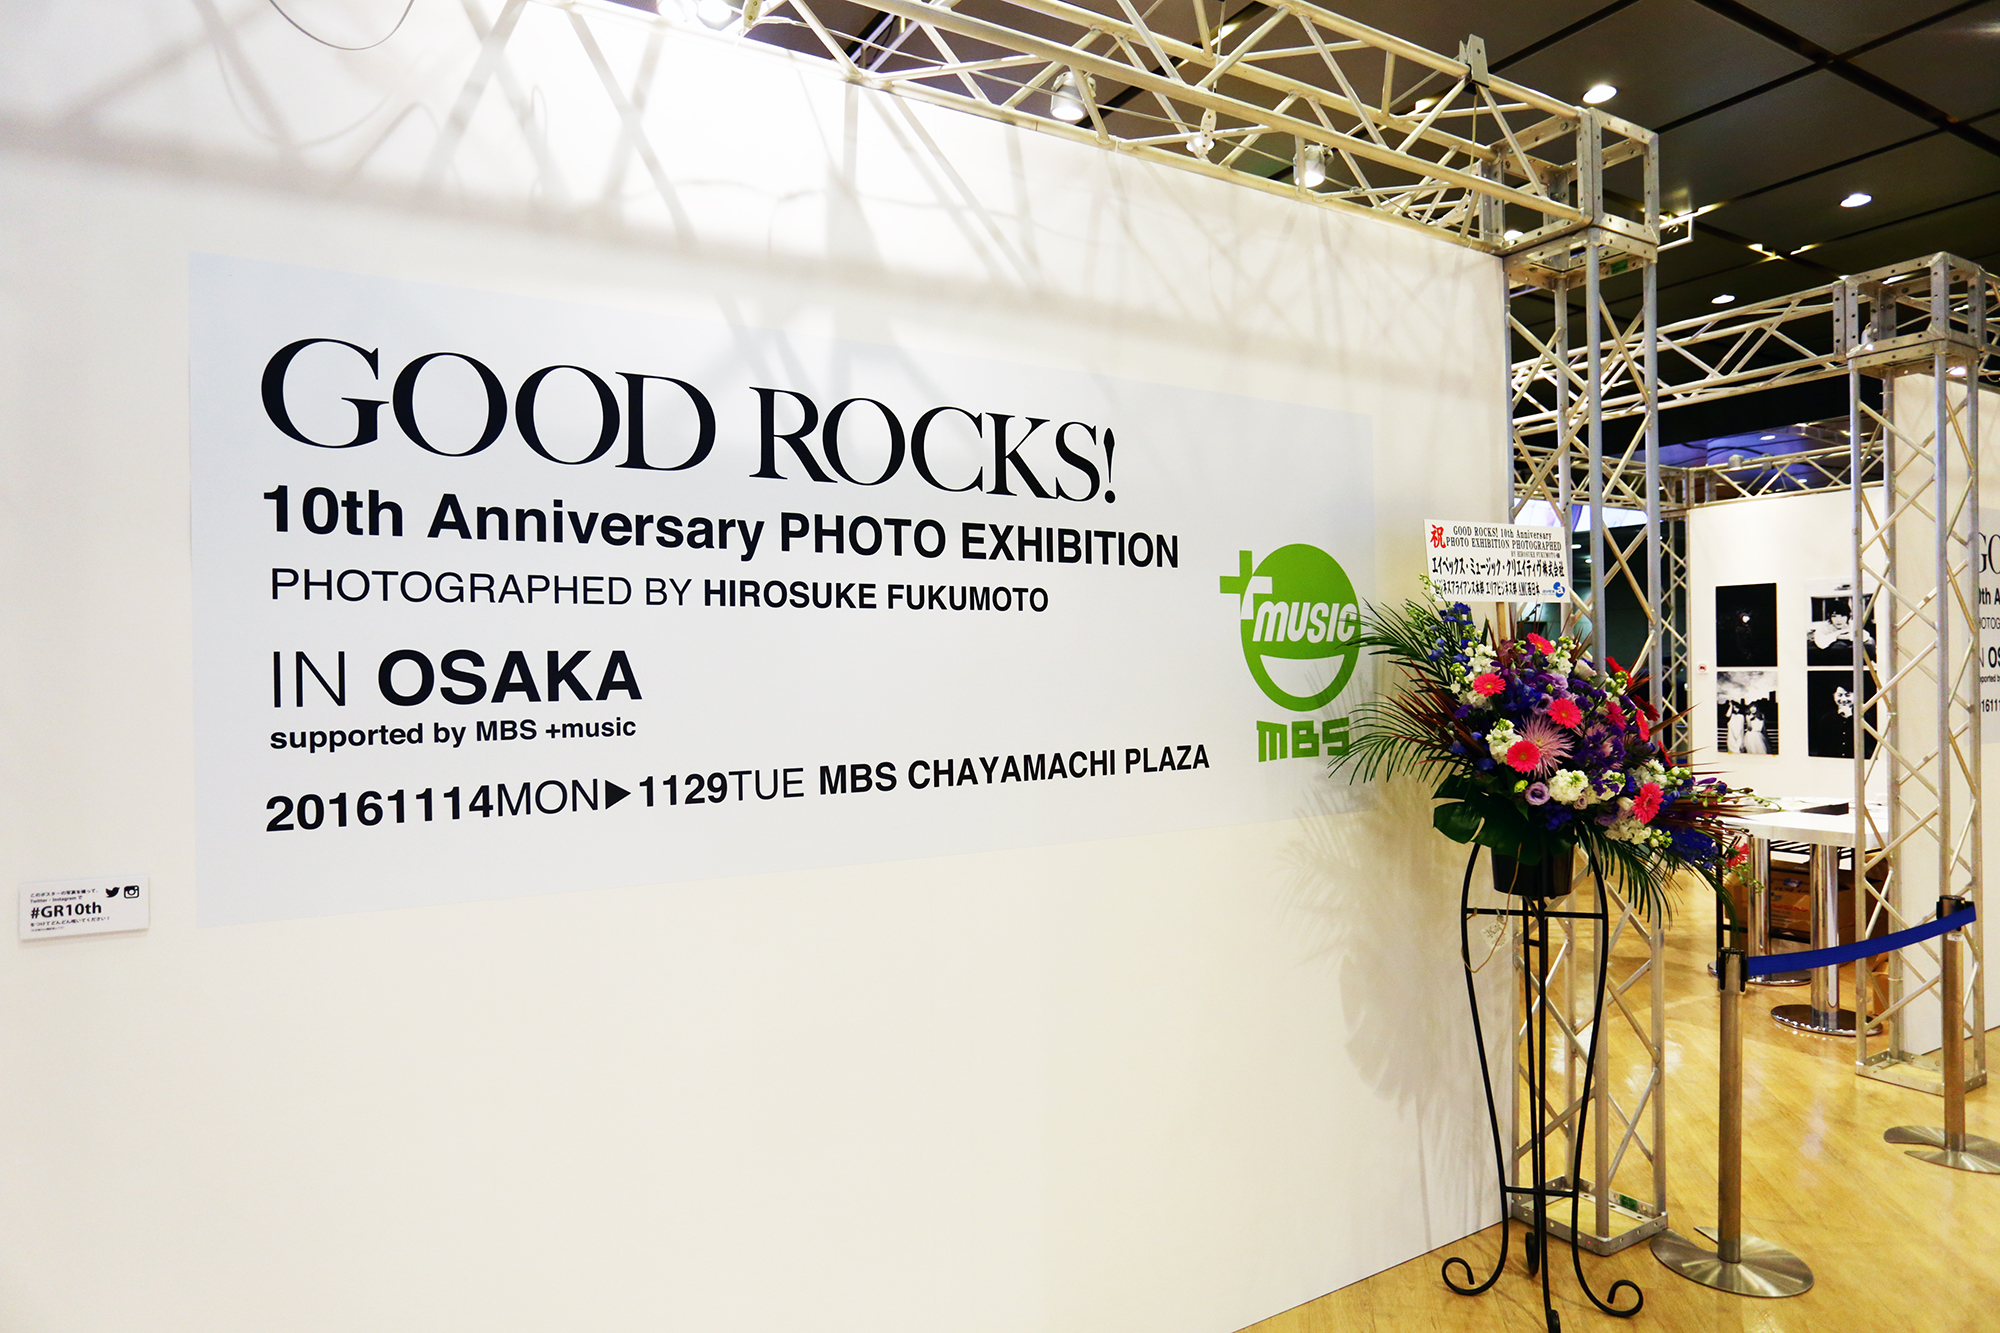 【大阪】GOOD ROCKS! 10th Anniversary PHOTO EXHIBITION PHOTOGRAPHED BY HIROSUKE FUKUMOTO